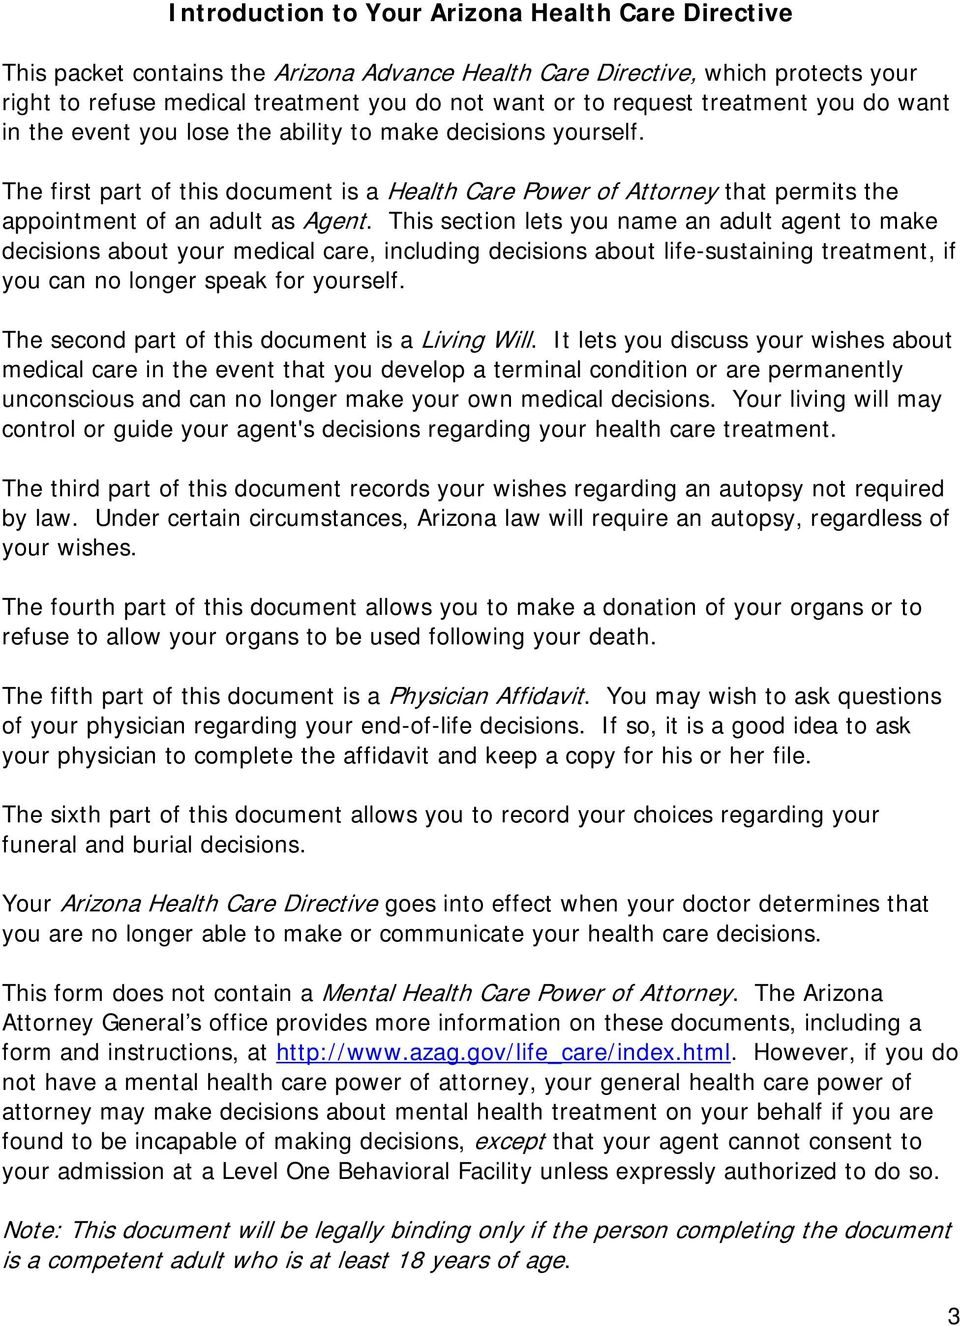 The first part of this document is a Health Care Power of Attorney that permits the appointment of an adult as Agent.